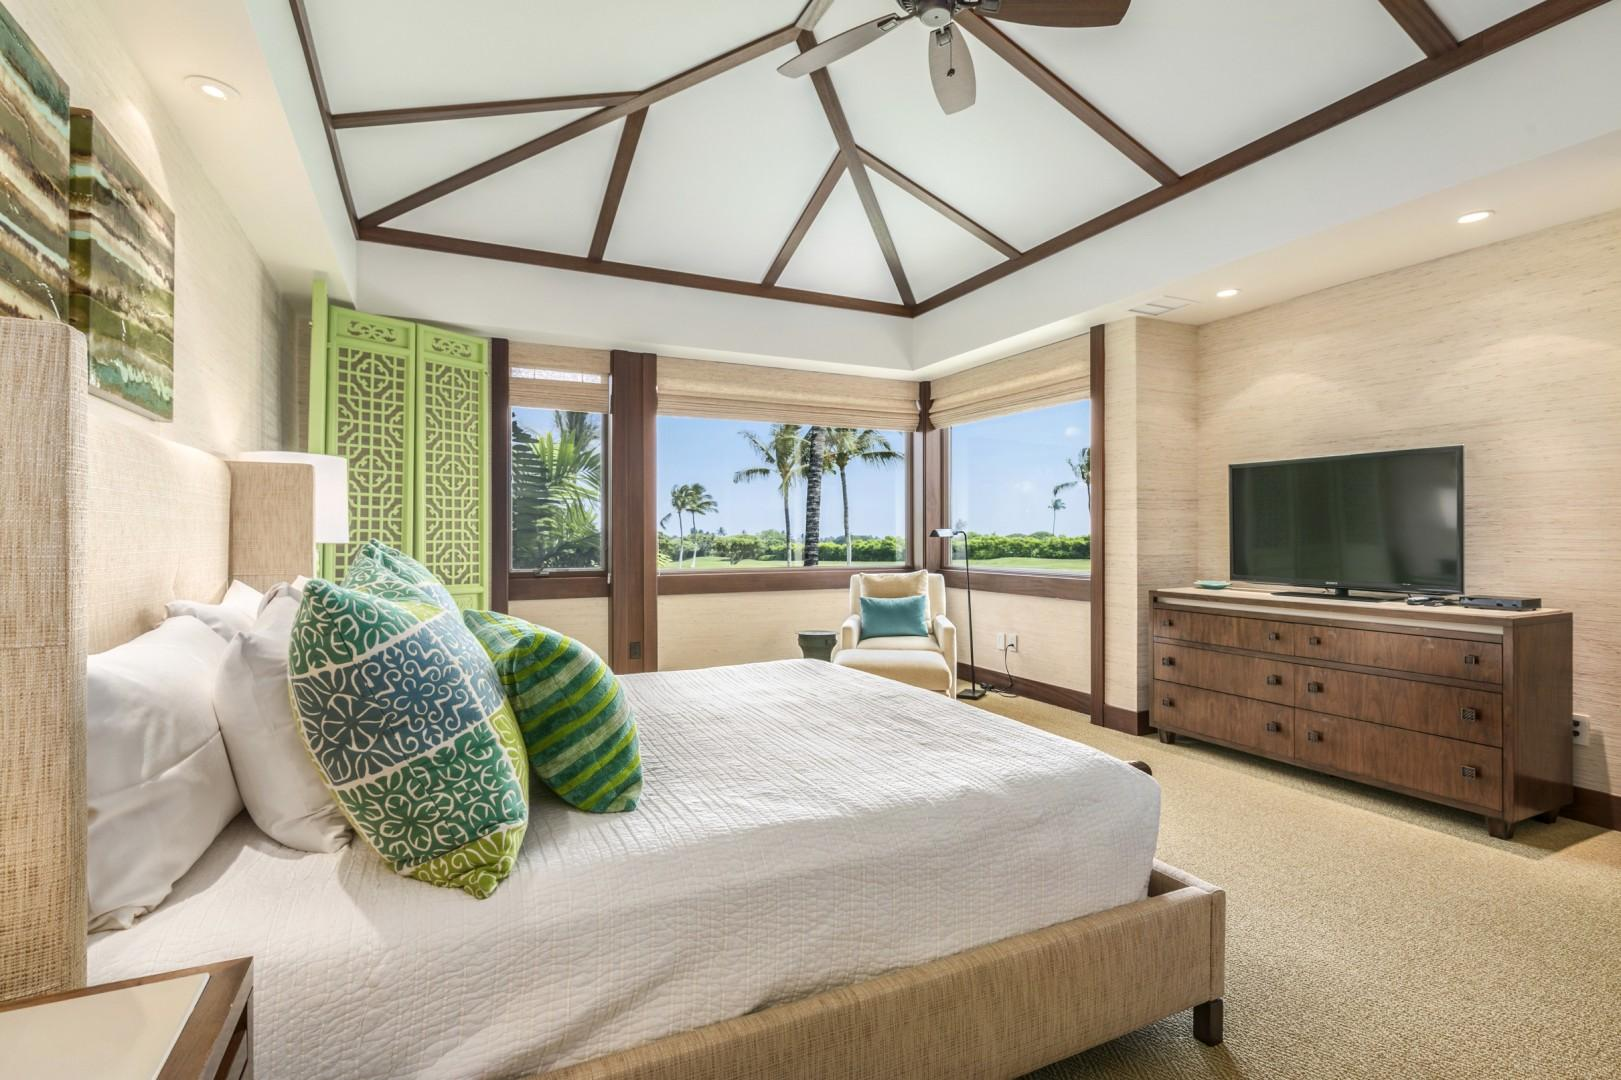 Alternate View of Master Suite Featuring Flat Screen TV and Beautiful View.